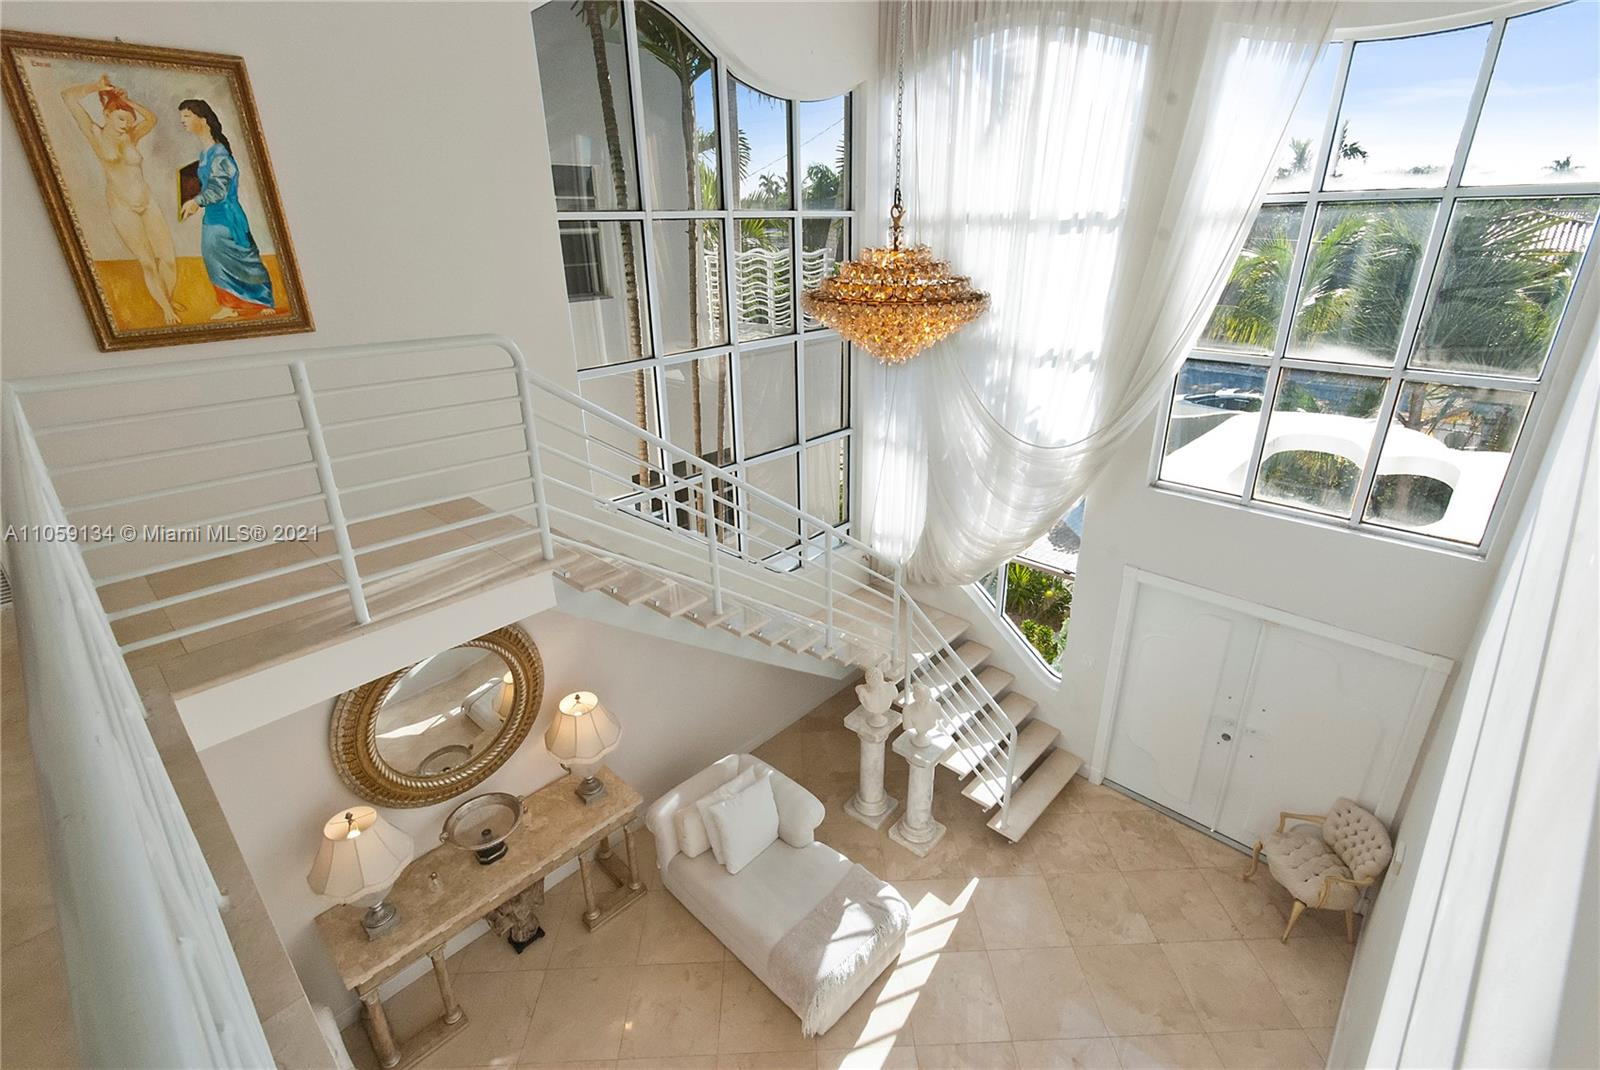 Contemporary Kobi Karp designed two story waterfront in sought after Bay Harbor Islands. Home features 24 foot ceilings and an open floor plan allowing for lots of natural light. Enjoy the beautiful water views from the four custom wave balconies and tropical salt water pool/Jacuzzi. There is a total of three suites and five baths plus cabana bathroom, study/office with wood library, wet bar and gym. Features guest or maid's room with separate entrance. Easy to and only house available for sale on the water in bay harbour!!!